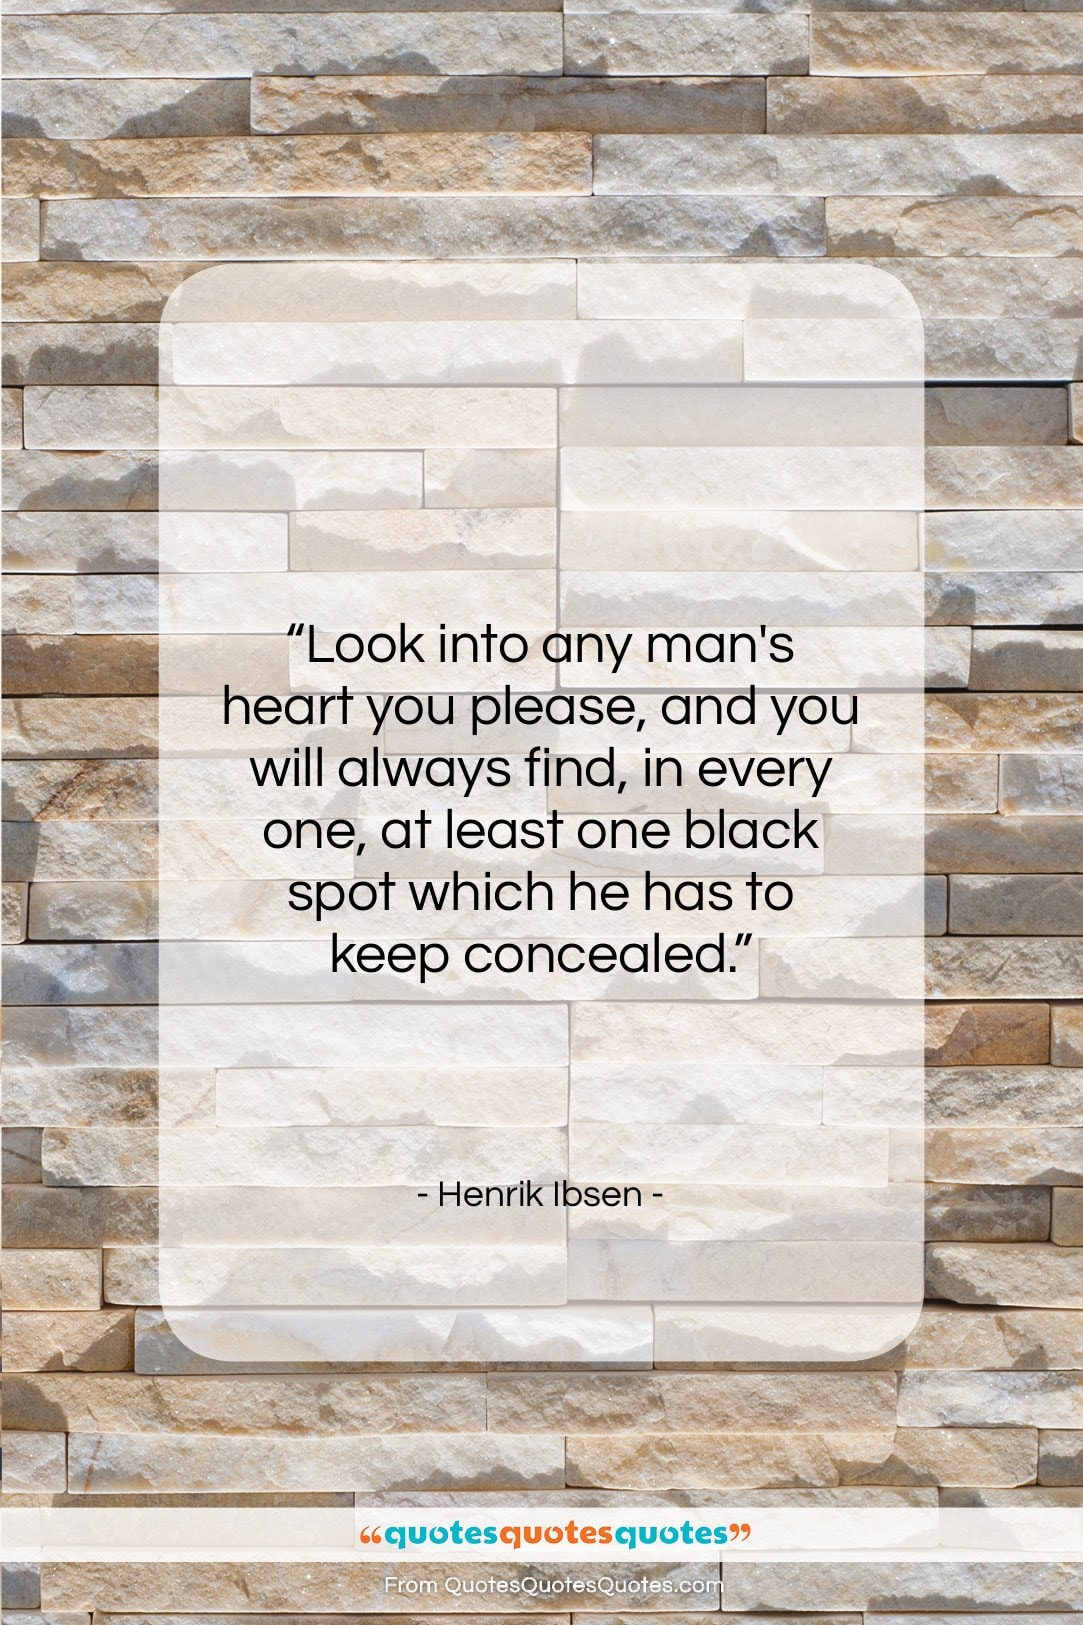 """Henrik Ibsen quote: """"Look into any man's heart you please,…""""- at QuotesQuotesQuotes.com"""